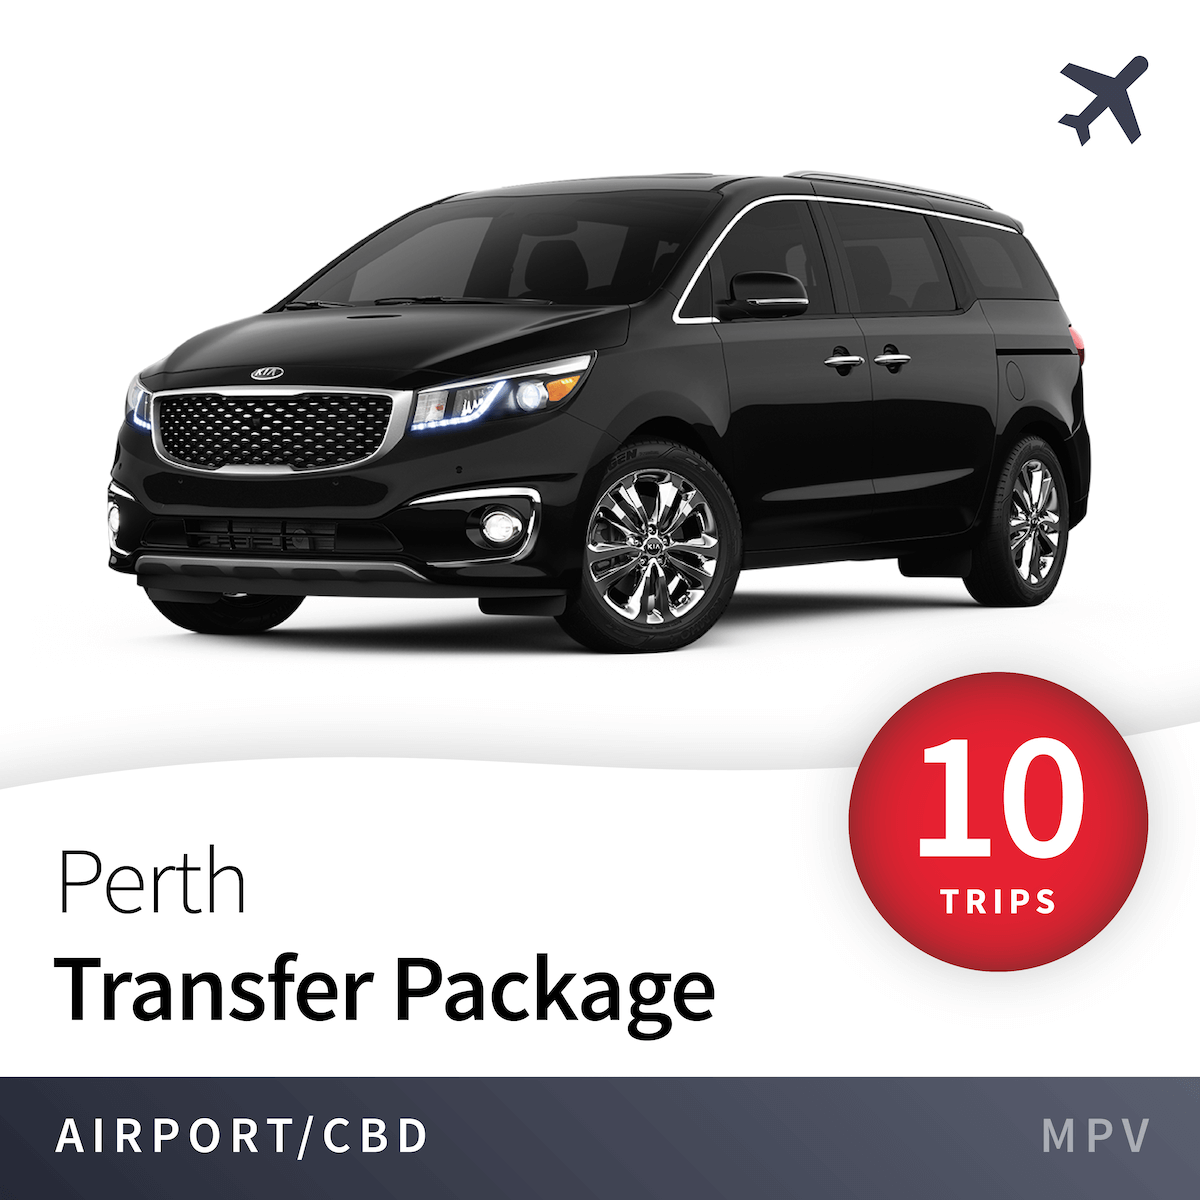 Perth Airport Transfer Package - MPV (10 Trips) 1